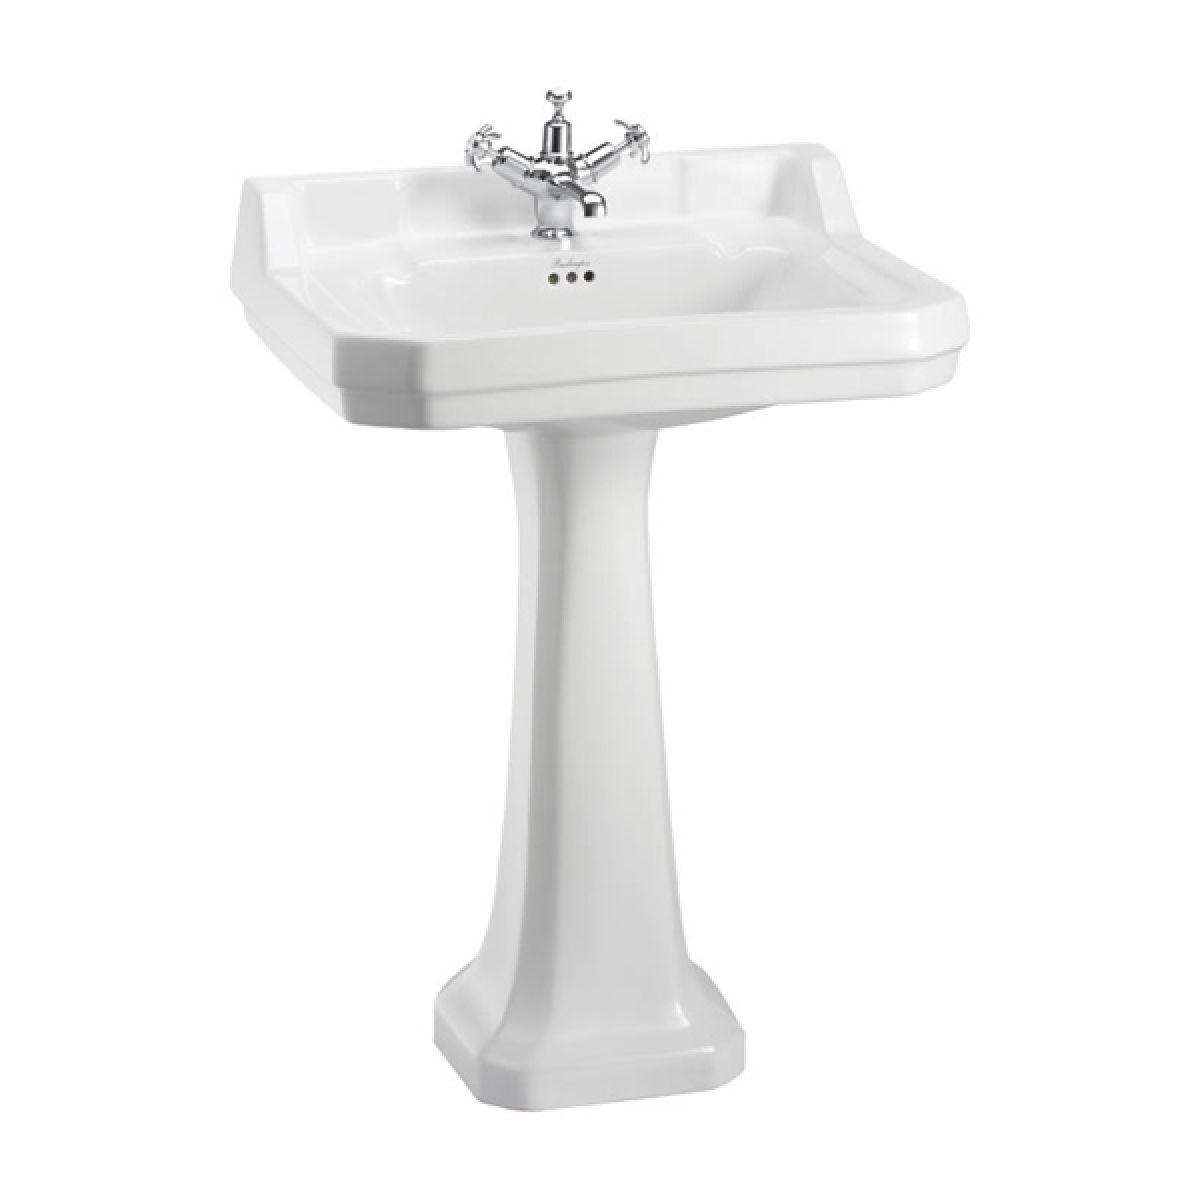 Burlington Edwardian Basin and Full Pedestal 610mm